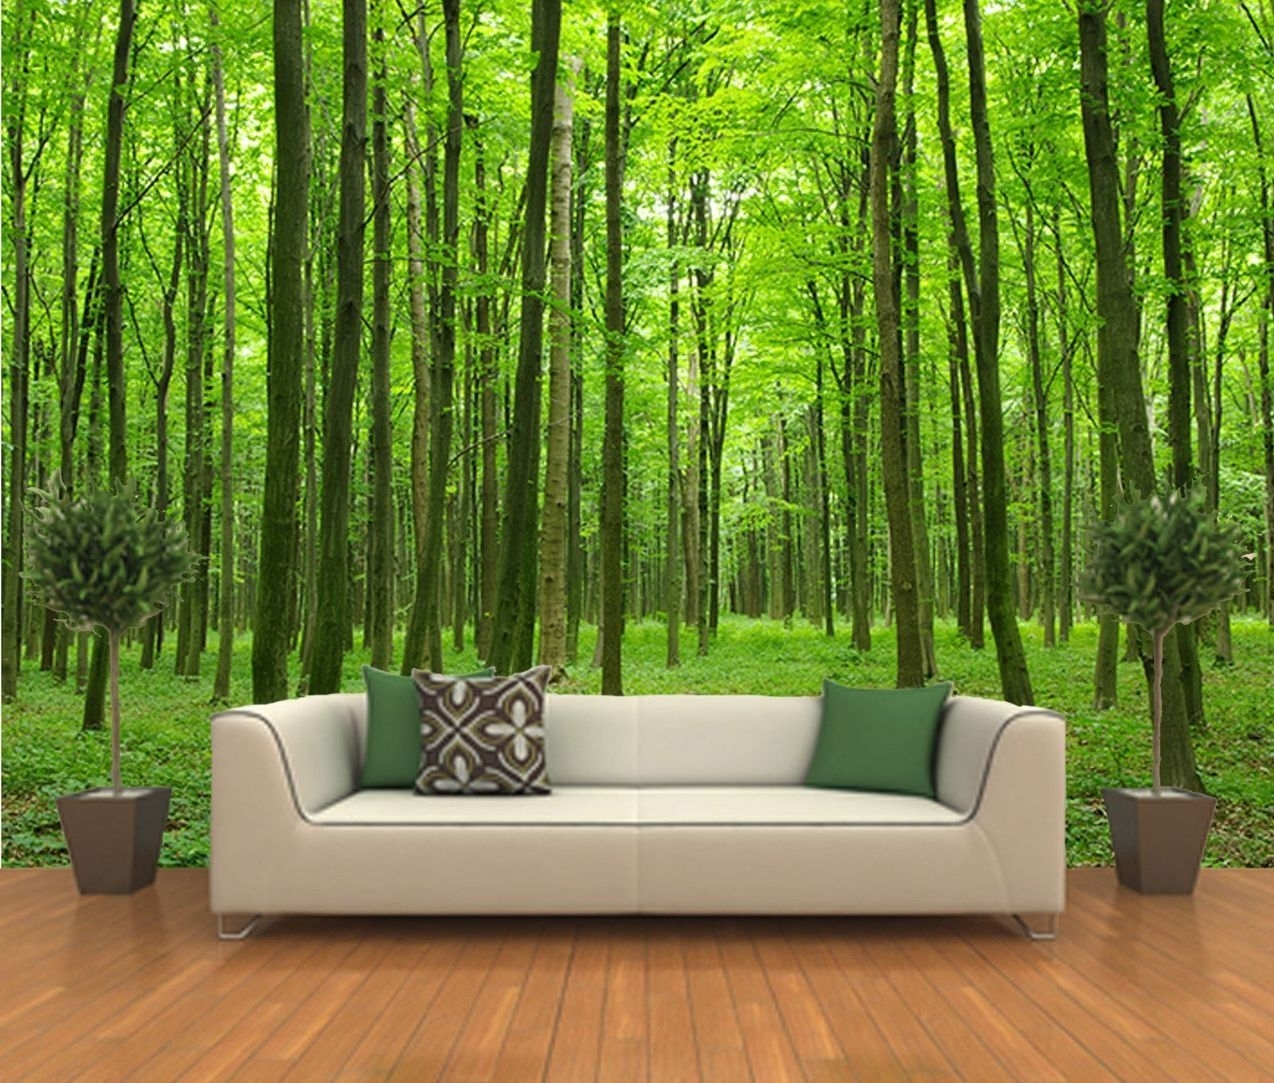 Peel And Stick Photo Wall Mural, Decor Wallpapers Forest Art – 504 Regarding Most Up To Date Adhesive Art Wall Accents (View 7 of 15)